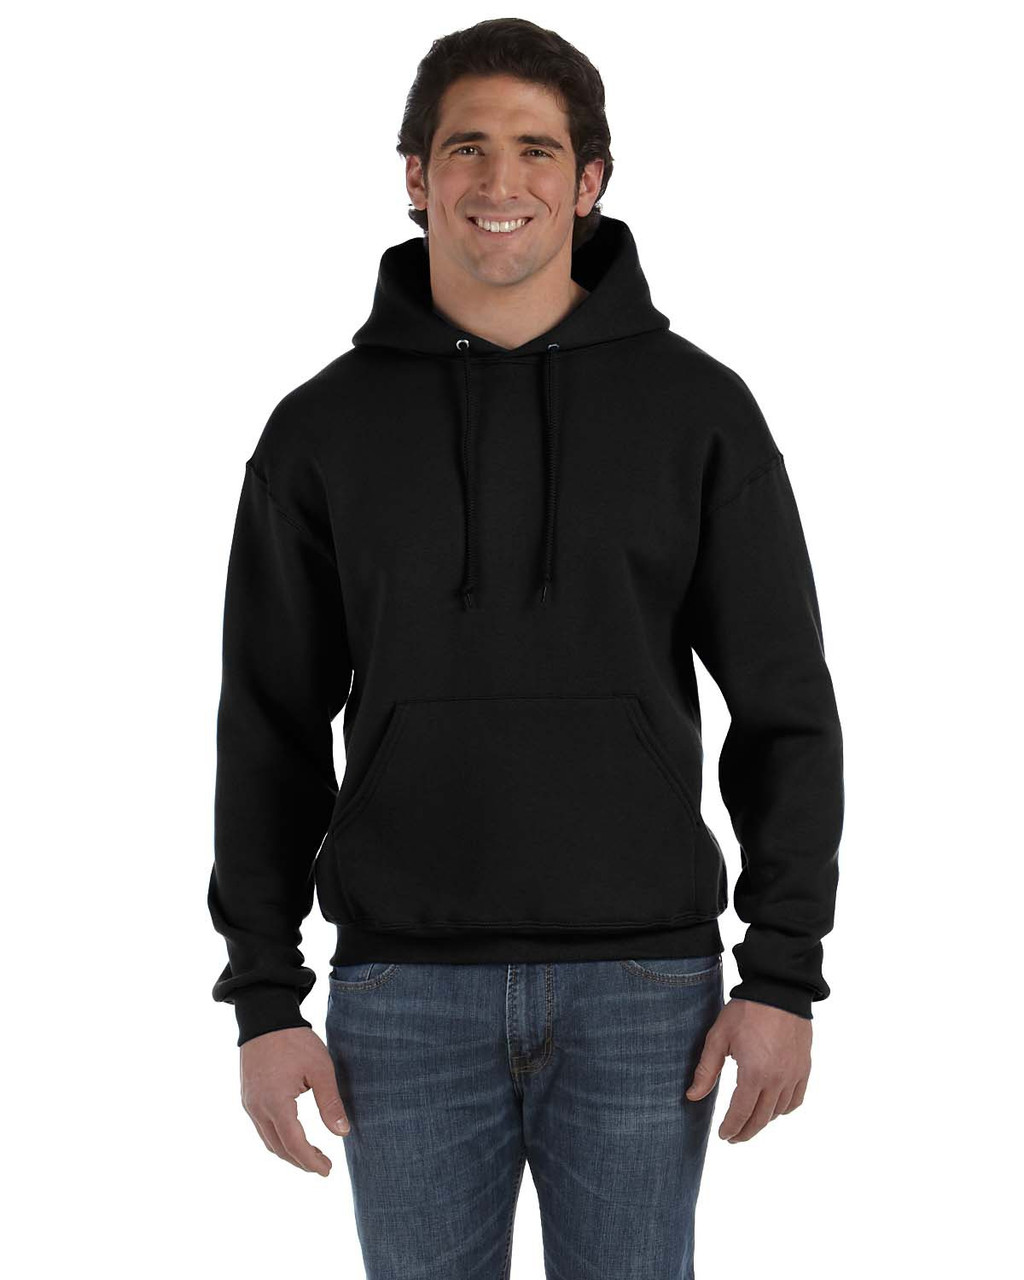 Black - 82130 Fruit of the Loom Supercotton™ Pullover Hoodie | Blankclothing.ca